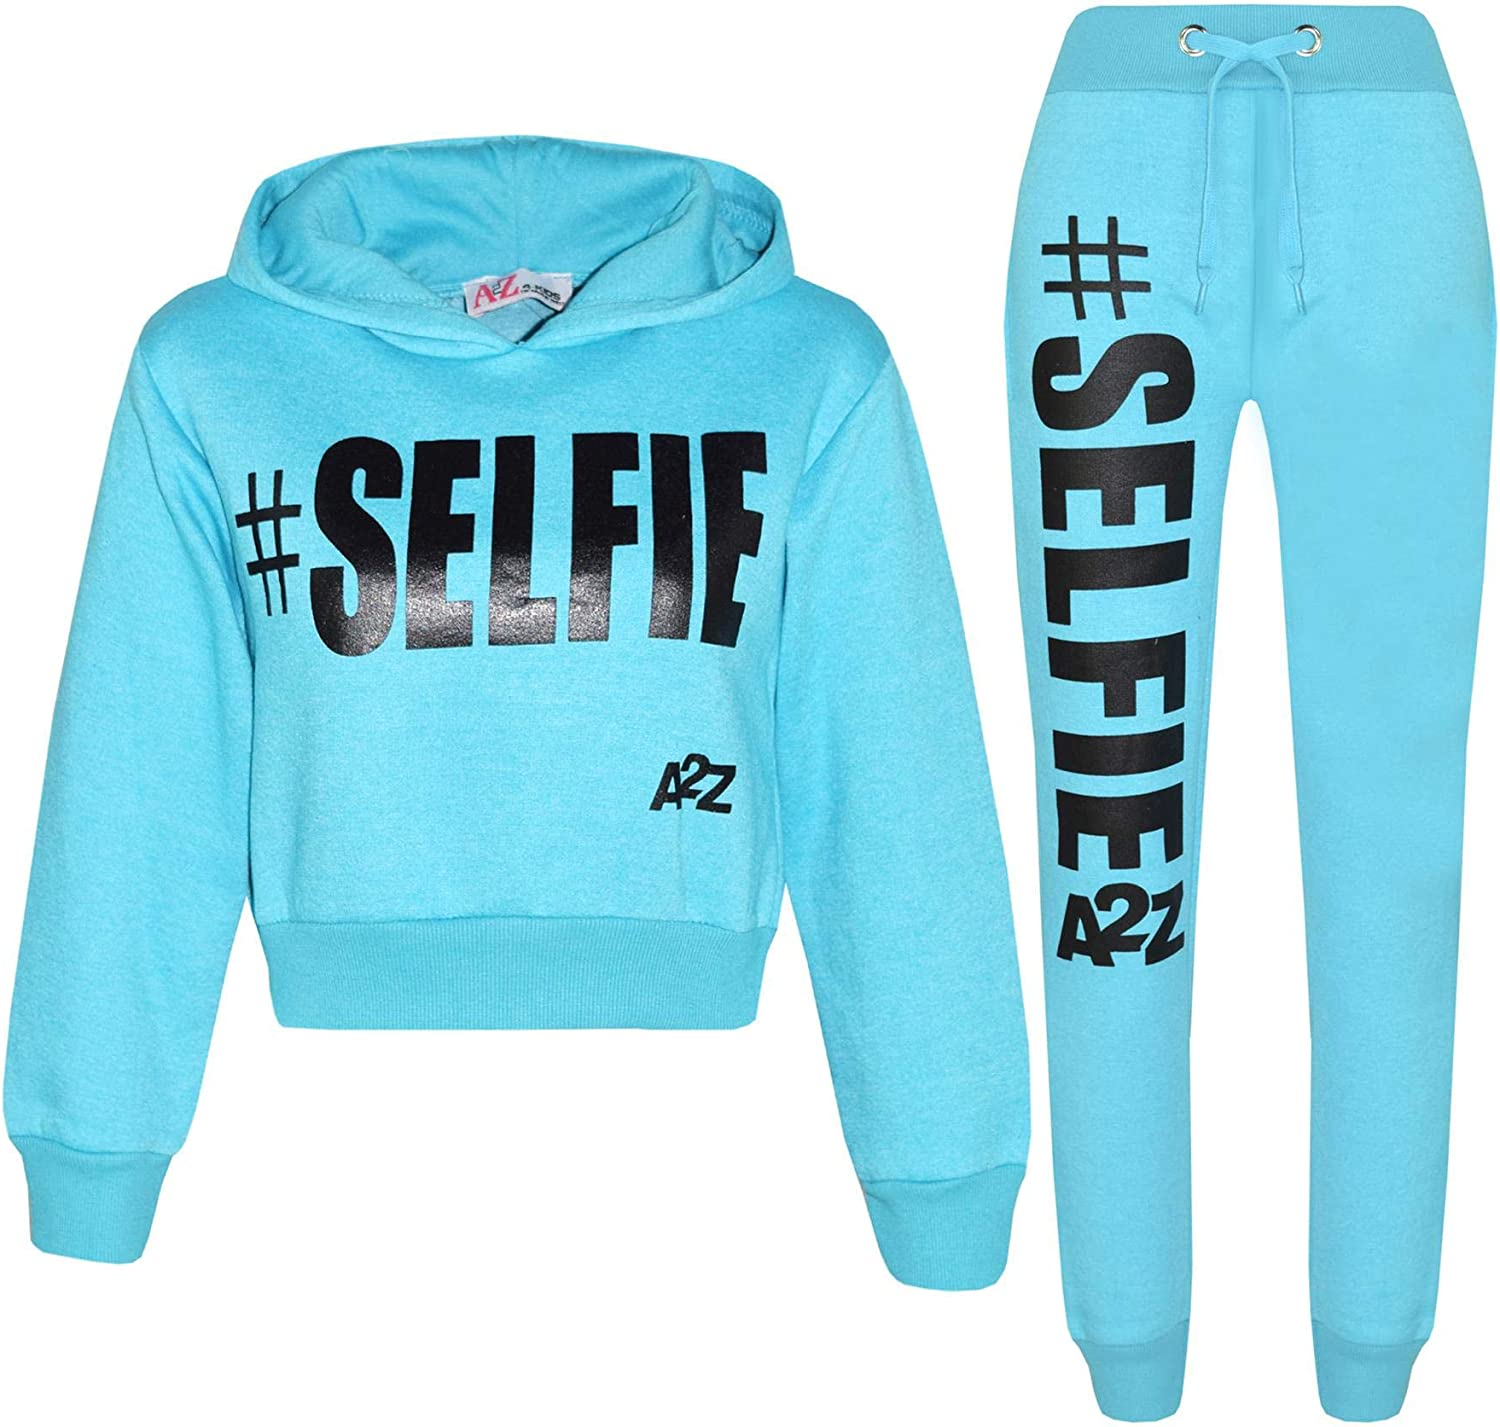 A2Z 4 Kids Kids Girls Boys Tracksuit Designers Blue #Selfie Embroidered Zipped Top Hoodie /& Botom Jogging Suit Joggers Age 5 6 7 8 9 10 11 12 13 Years